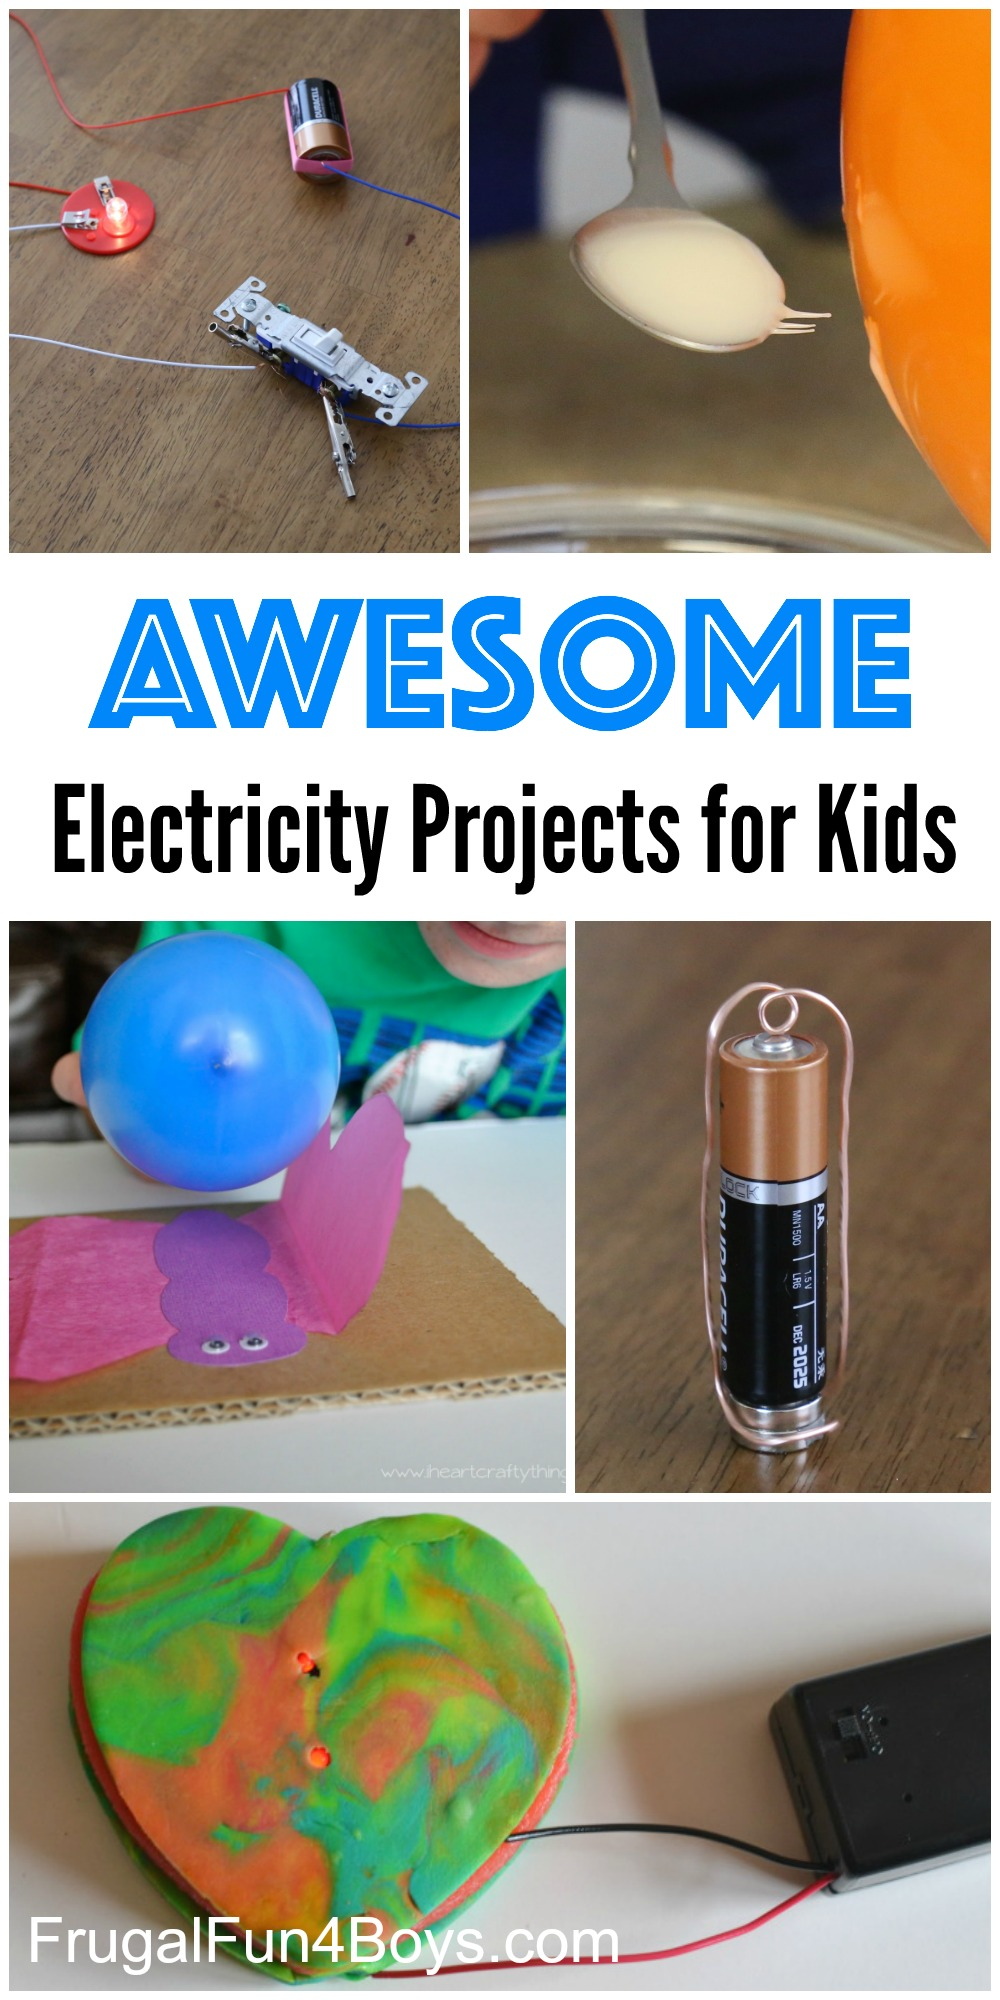 10 Awesome Electricity Projects For Kids Frugal Fun Boys And Girls Learning Basic Electrical Wiring Science Experiments Demonstrations With Circuits More